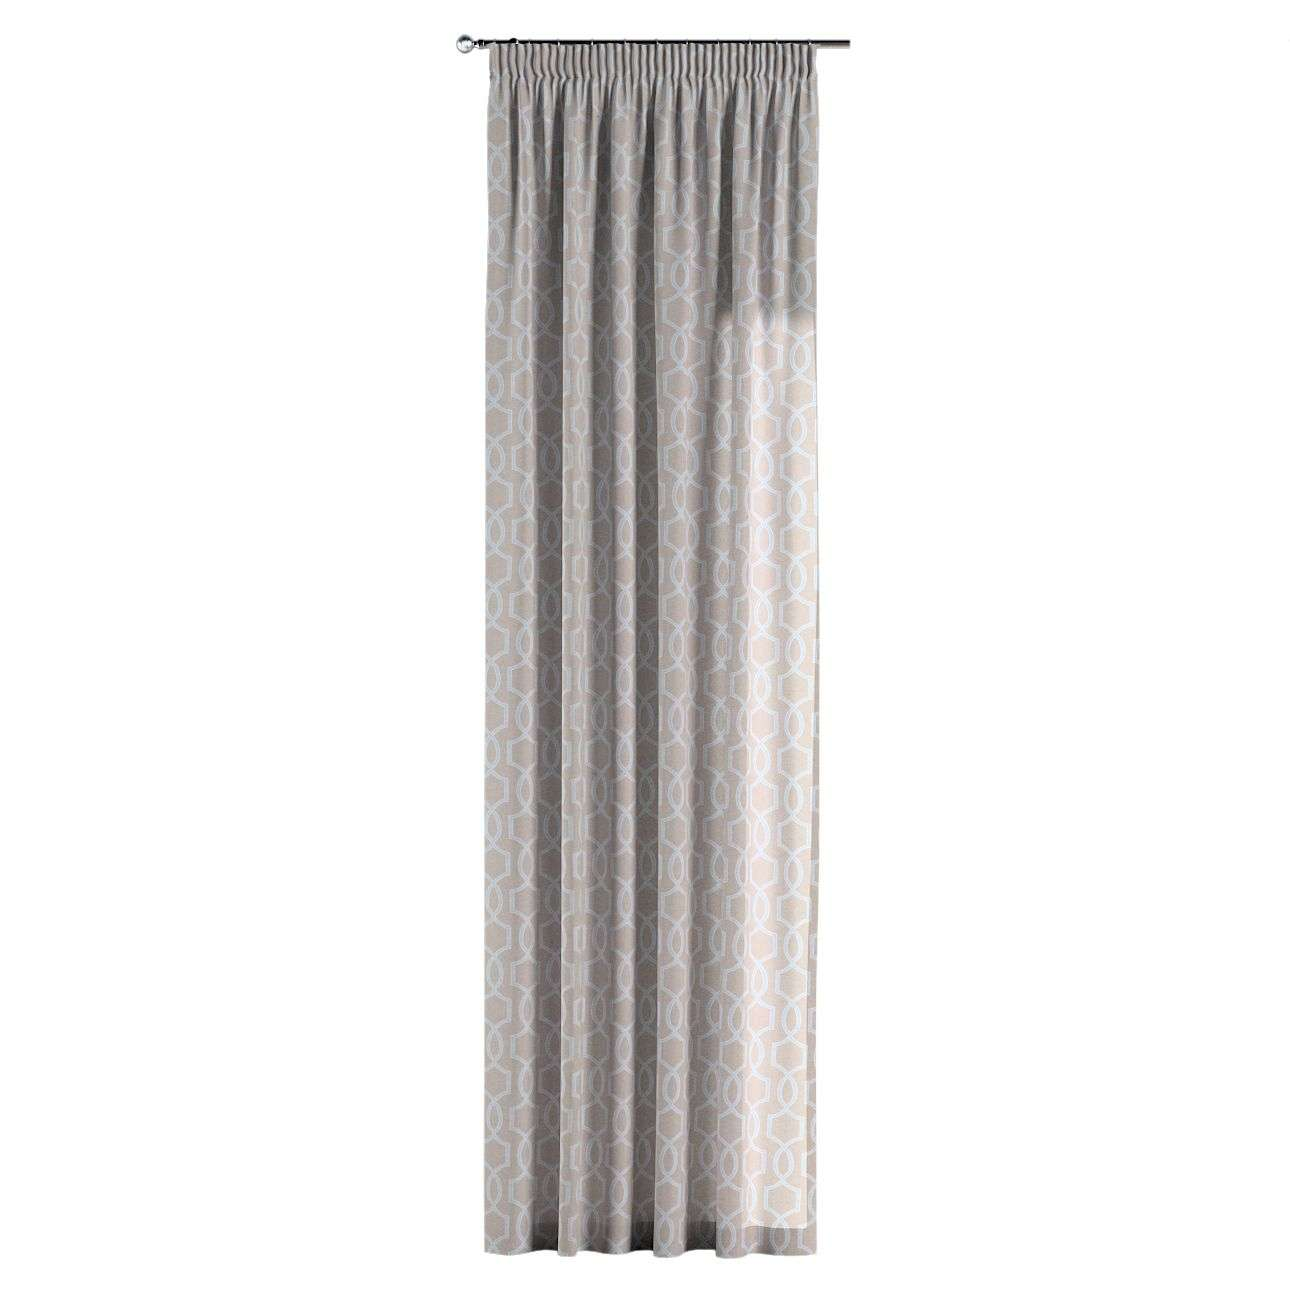 Pencil pleat curtains 130 × 260 cm (51 × 102 inch) in collection Comics/Geometrical, fabric: 141-26